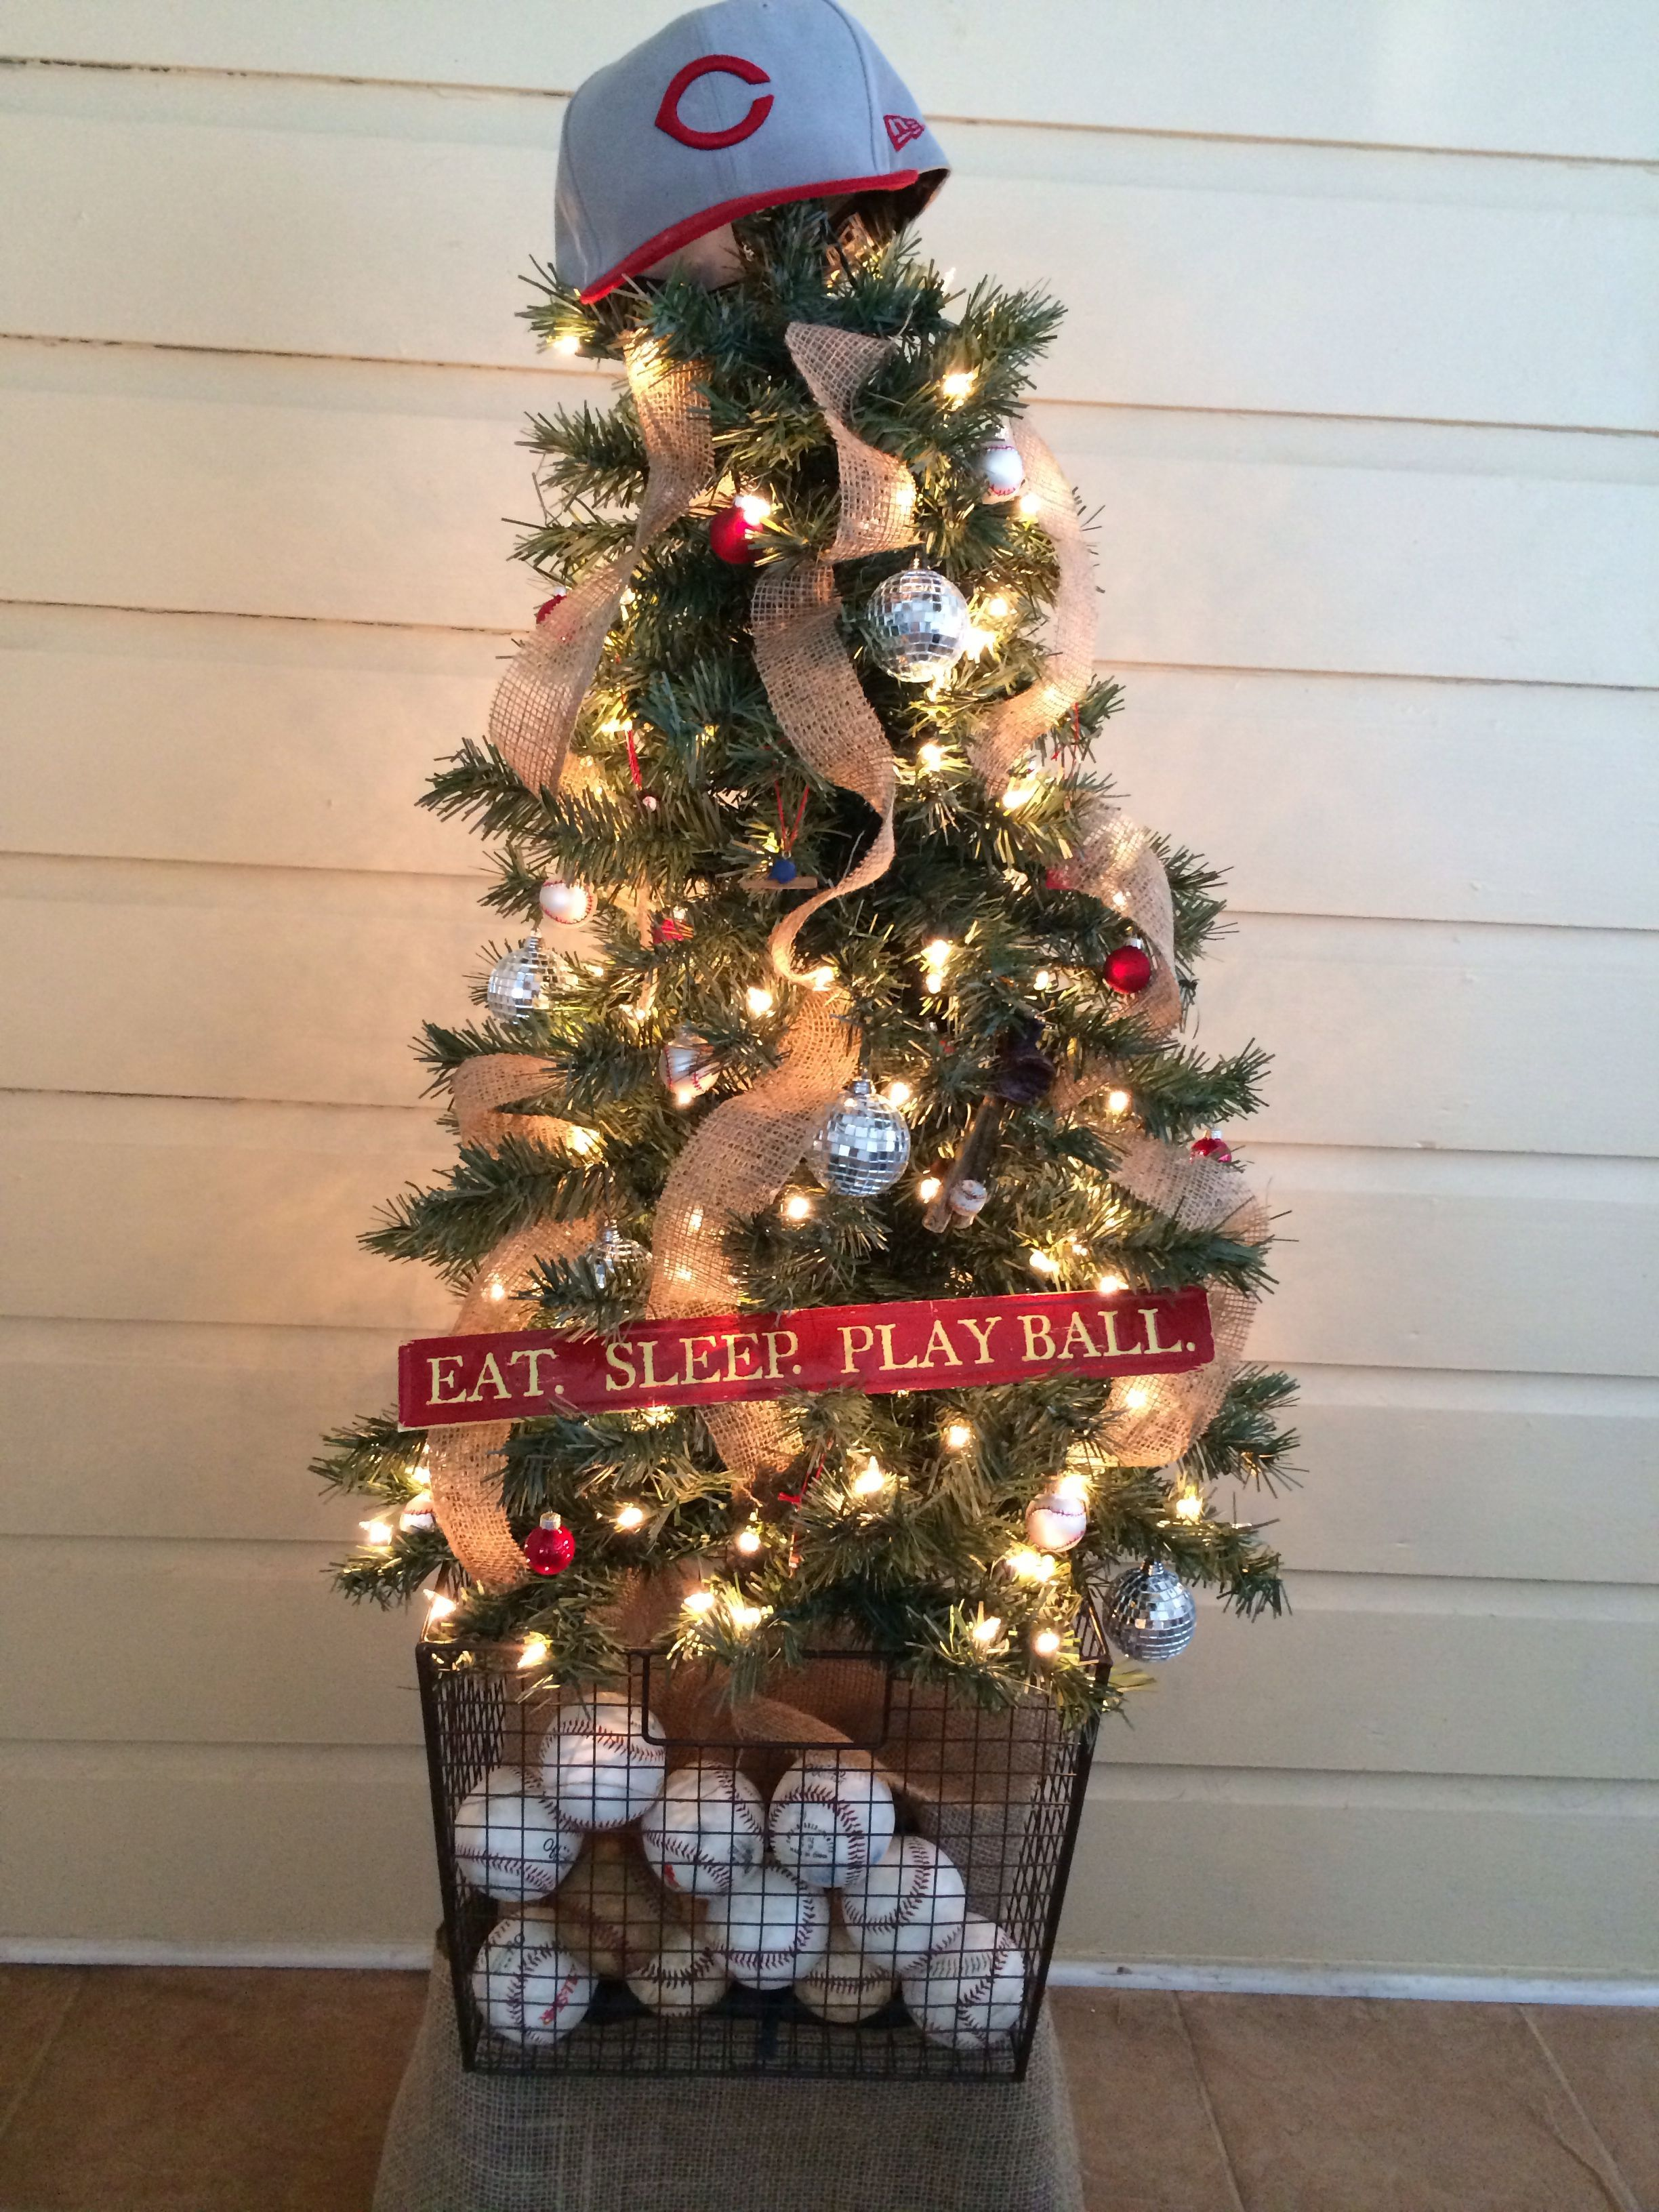 Baseball Christmas tree every kid should have their own tree